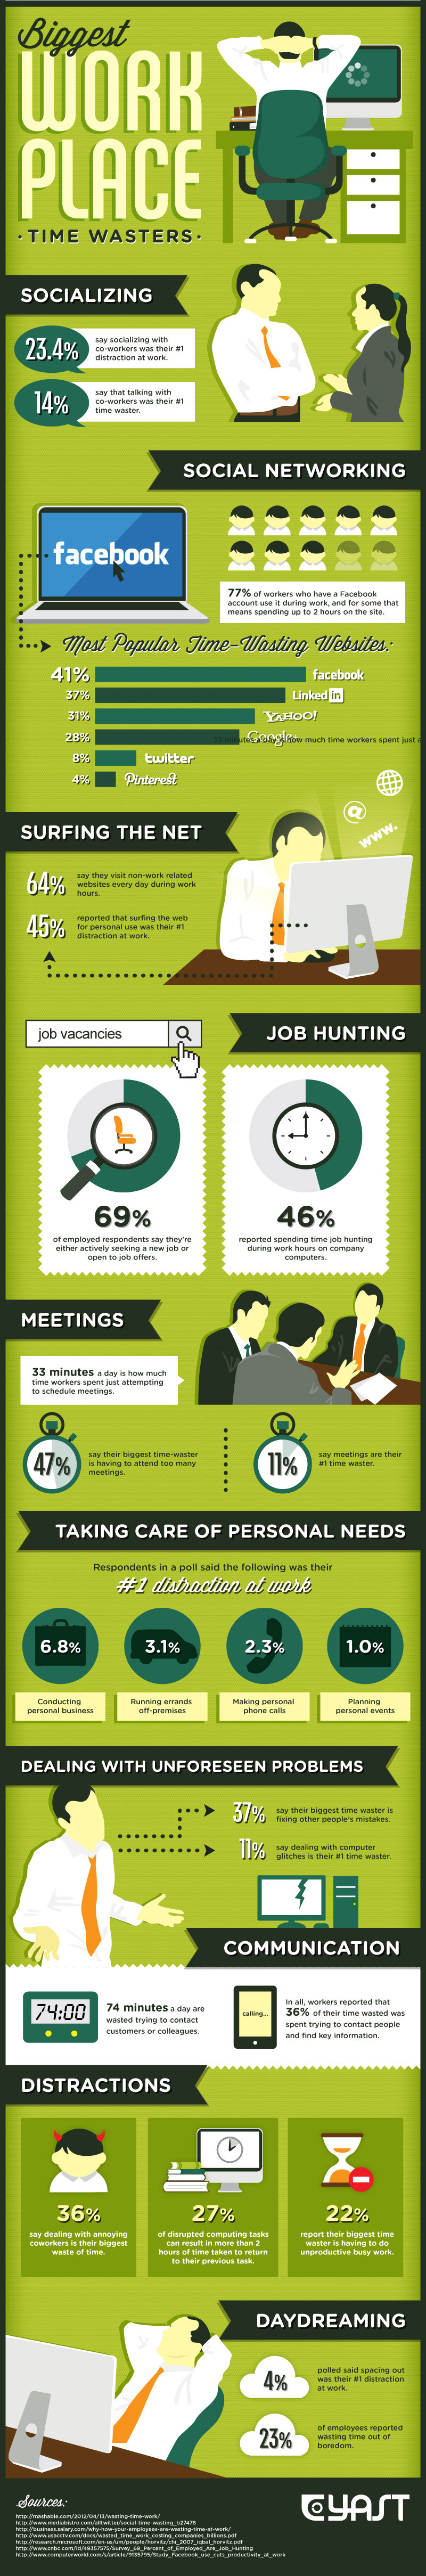 The 10 Biggest Time Wasters During Your Workday [Infographic]